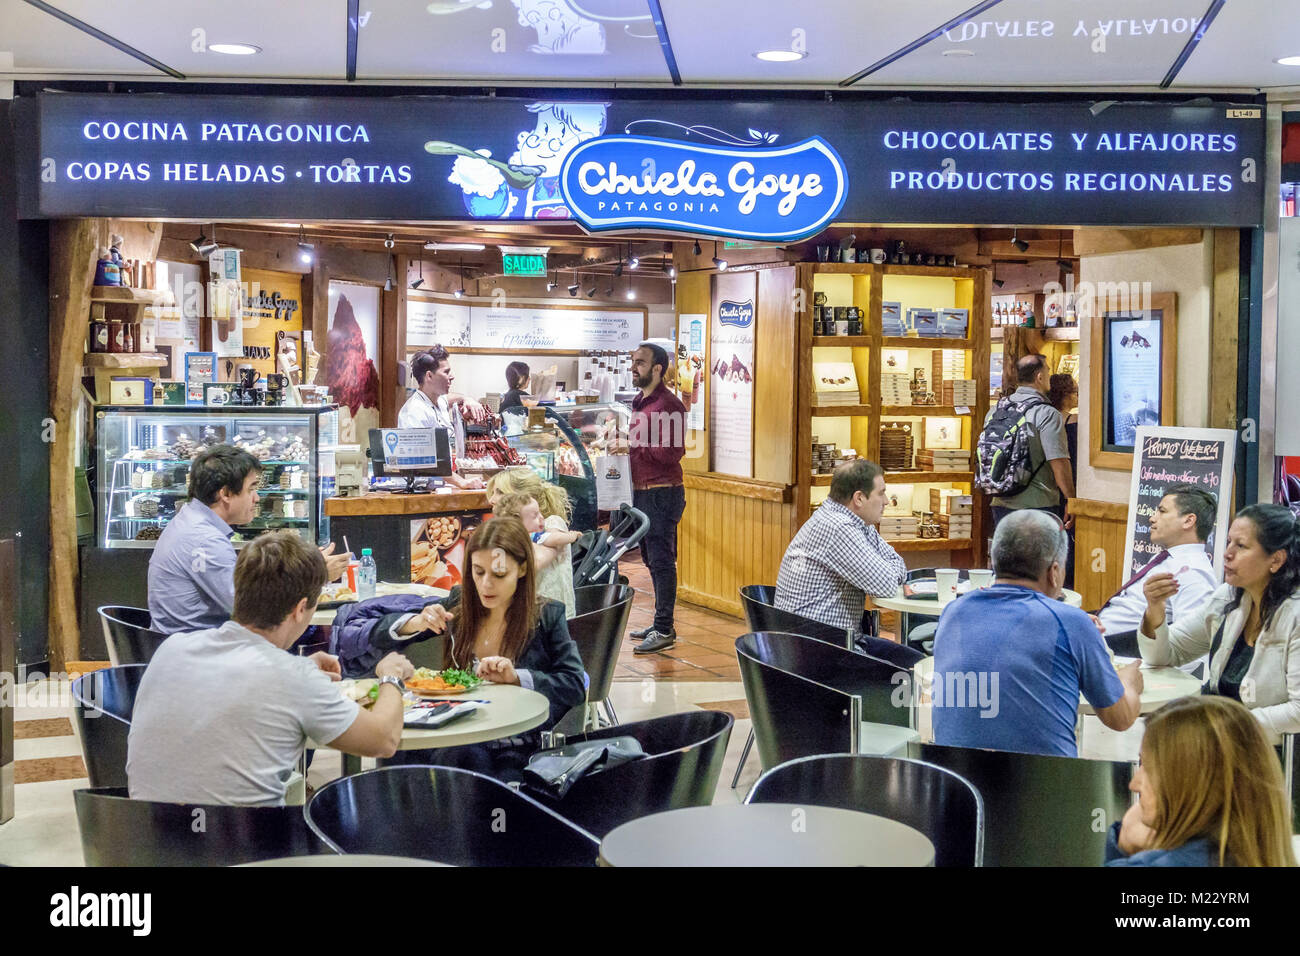 Buenos Aires Argentina Galerias Pacífico mall shopping food court Abuela  Goye Patagonia productos regionales restaurante Cafe tablas hombre mujer  Hispano ... b9243e4a701